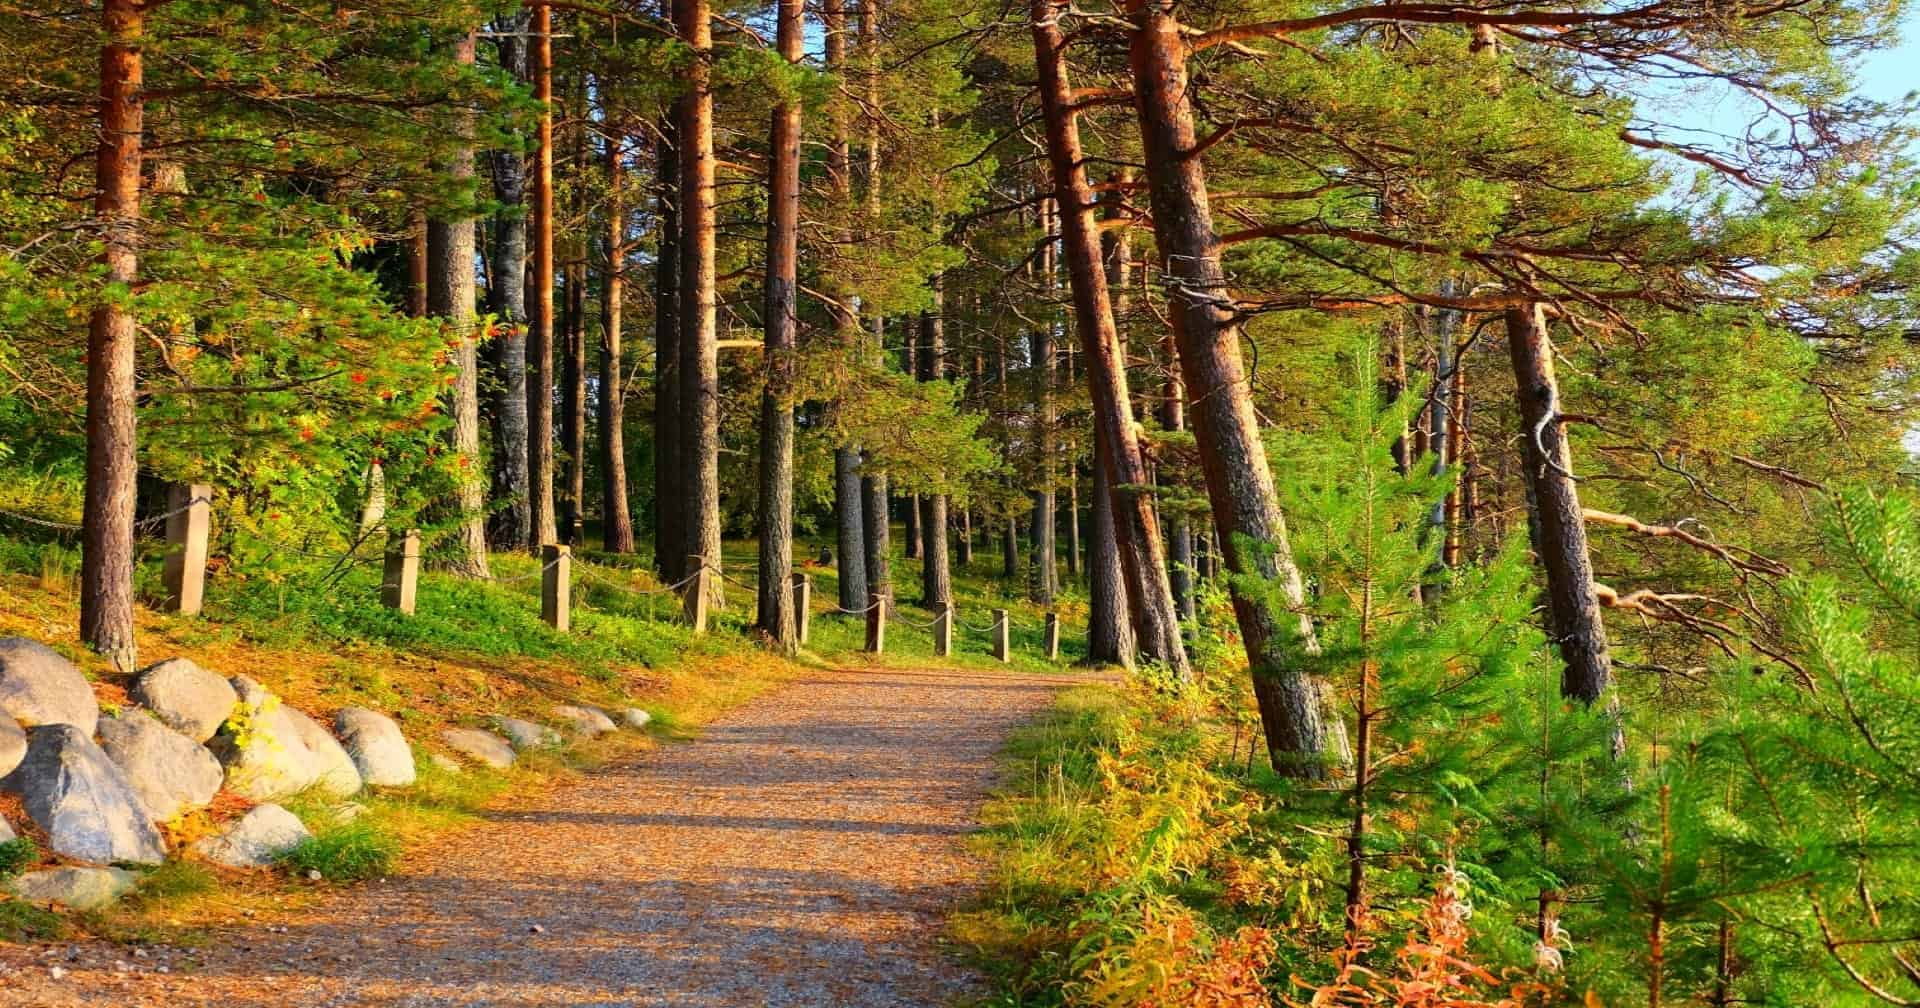 Forest in Kuhmo Finland